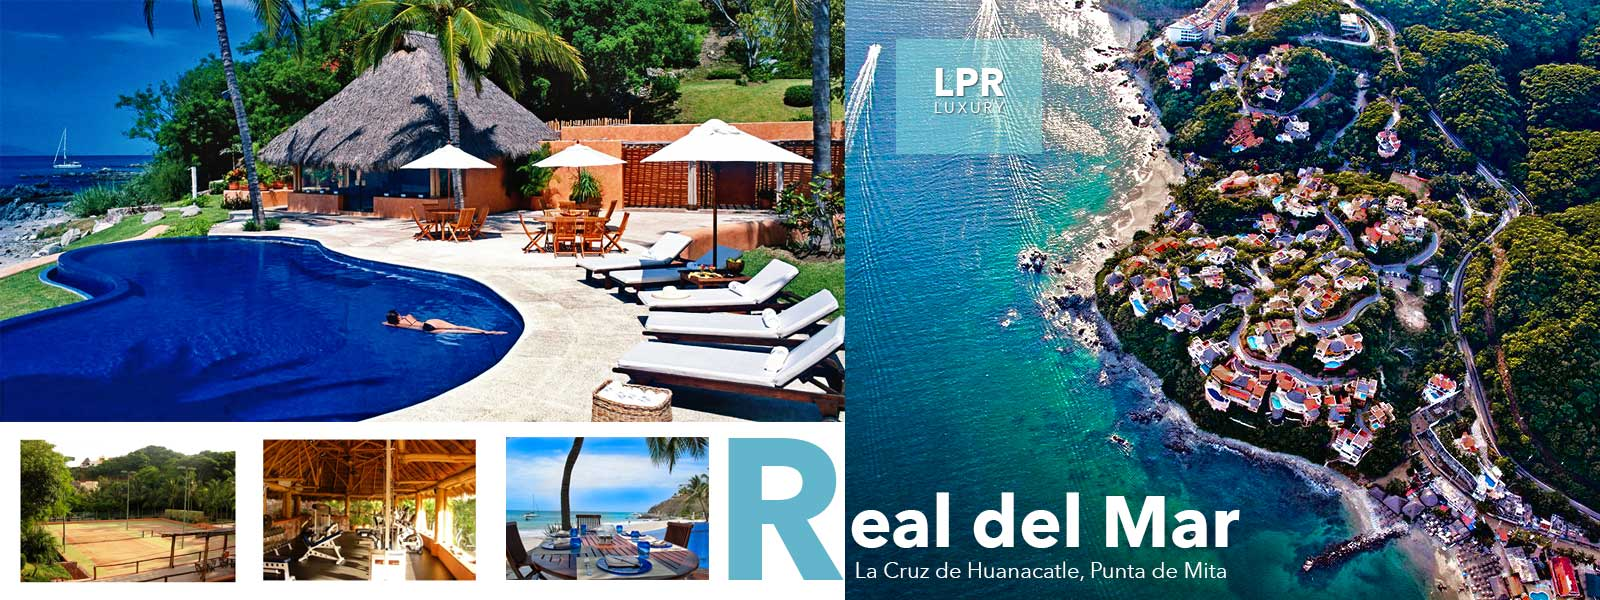 Real del Mar - Luxury resort real estate on the North shore of Puerto Vallarta, Mexico